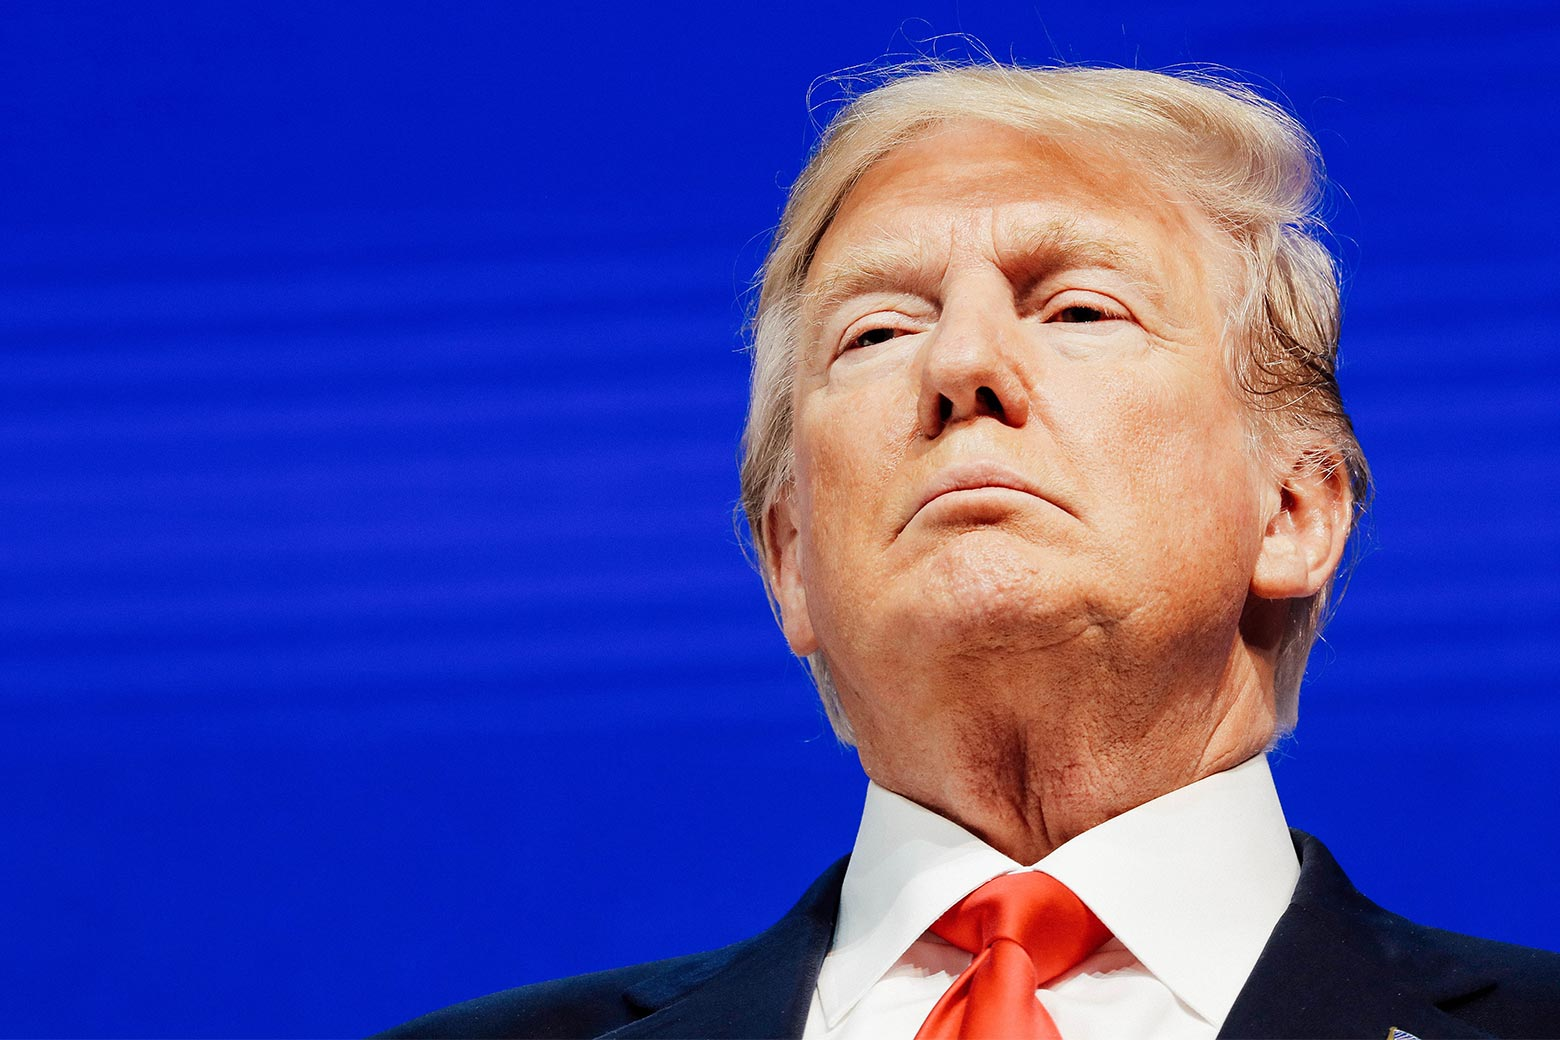 President Donald Trump looks on during the World Economic Forum annual meeting in Davos, Switzerland, on Friday.